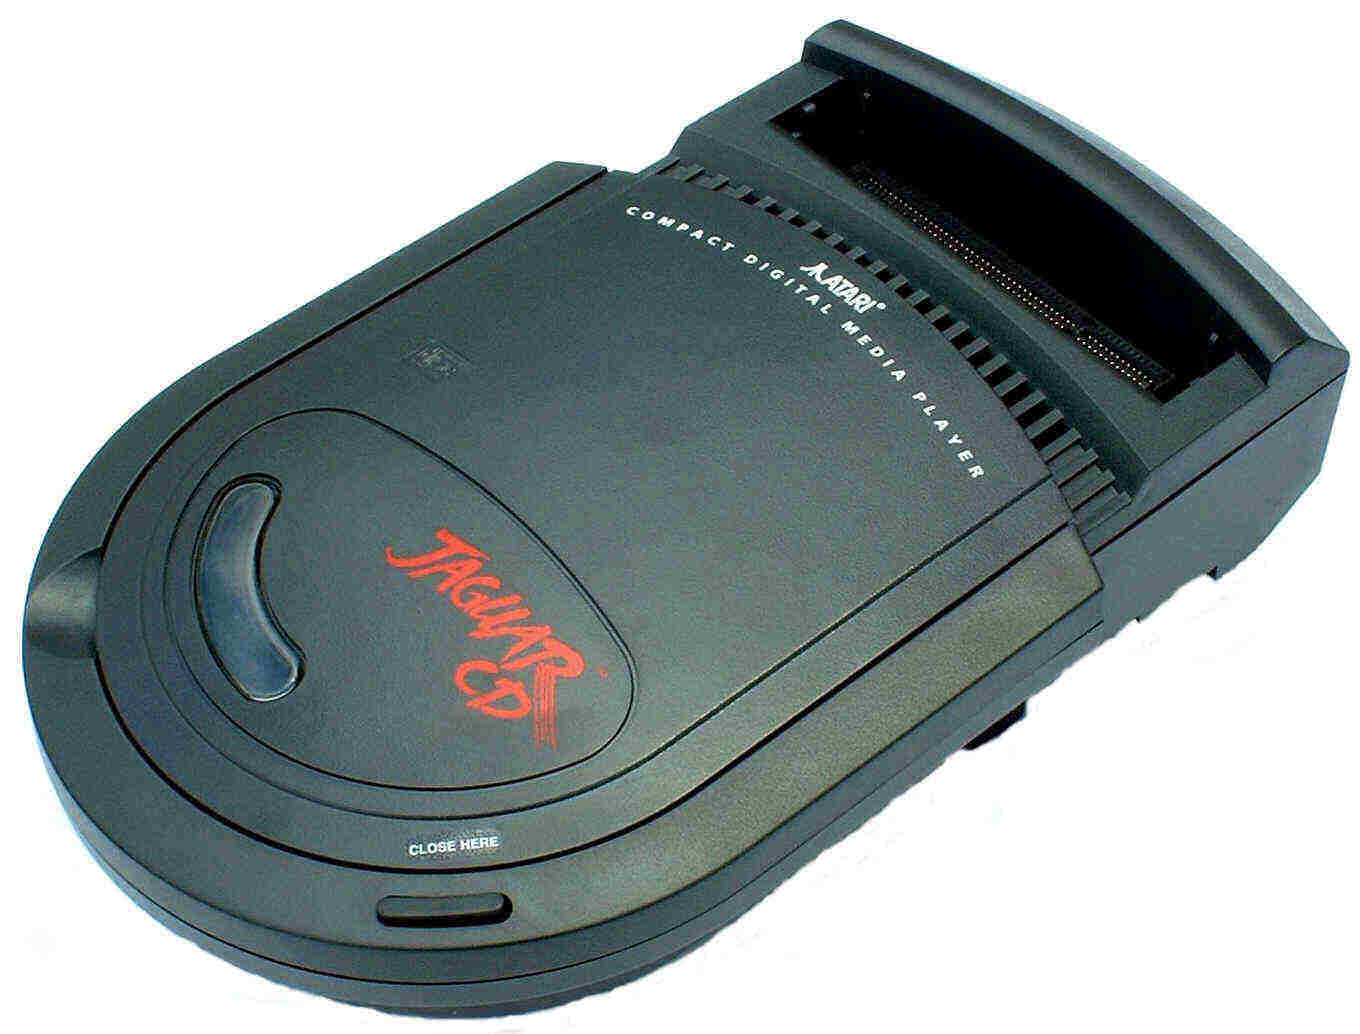 Gaming Computers Adelaide Atari Jaguar Cd Ebay Help Advice Atari Jaguar Atariage